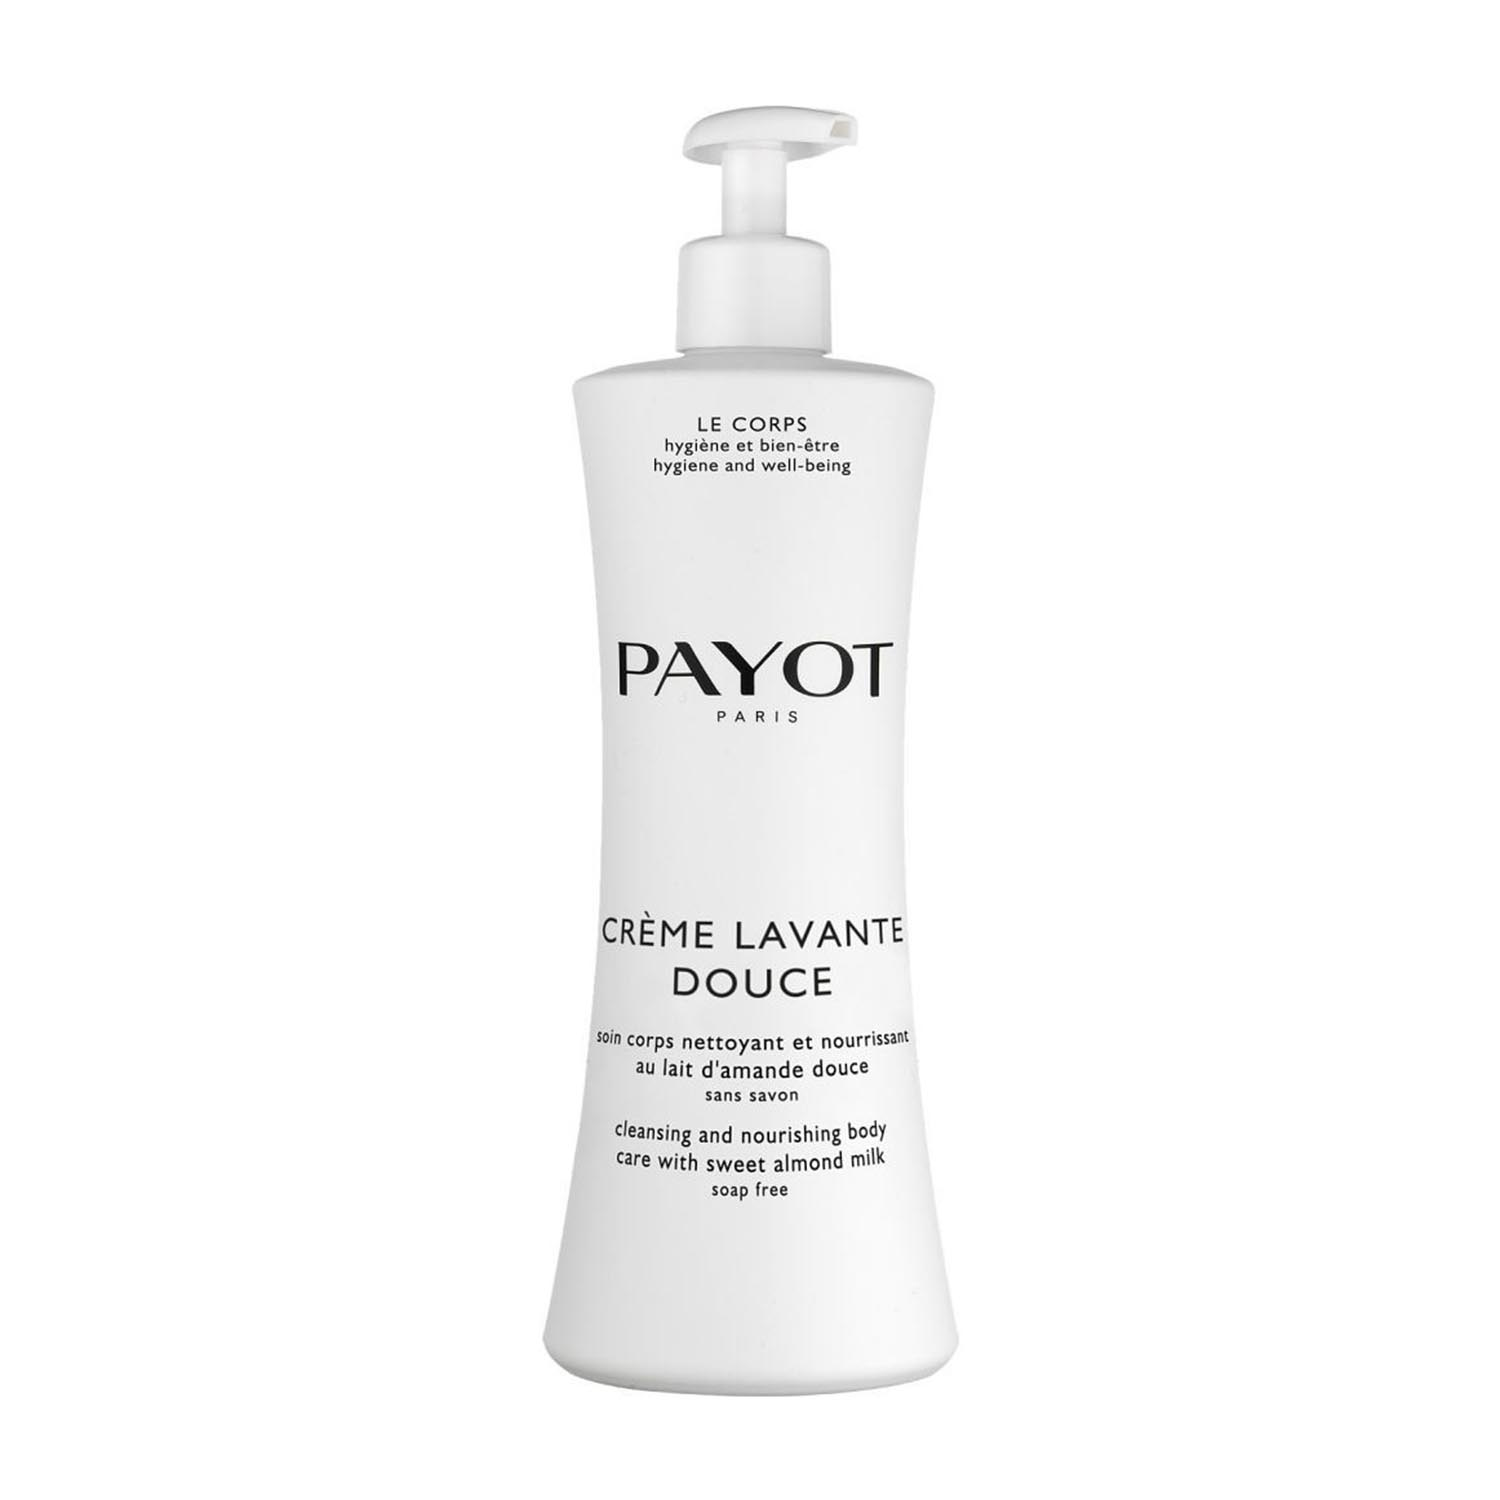 Payot le corps cleansing and nourishing body care milk 400ml